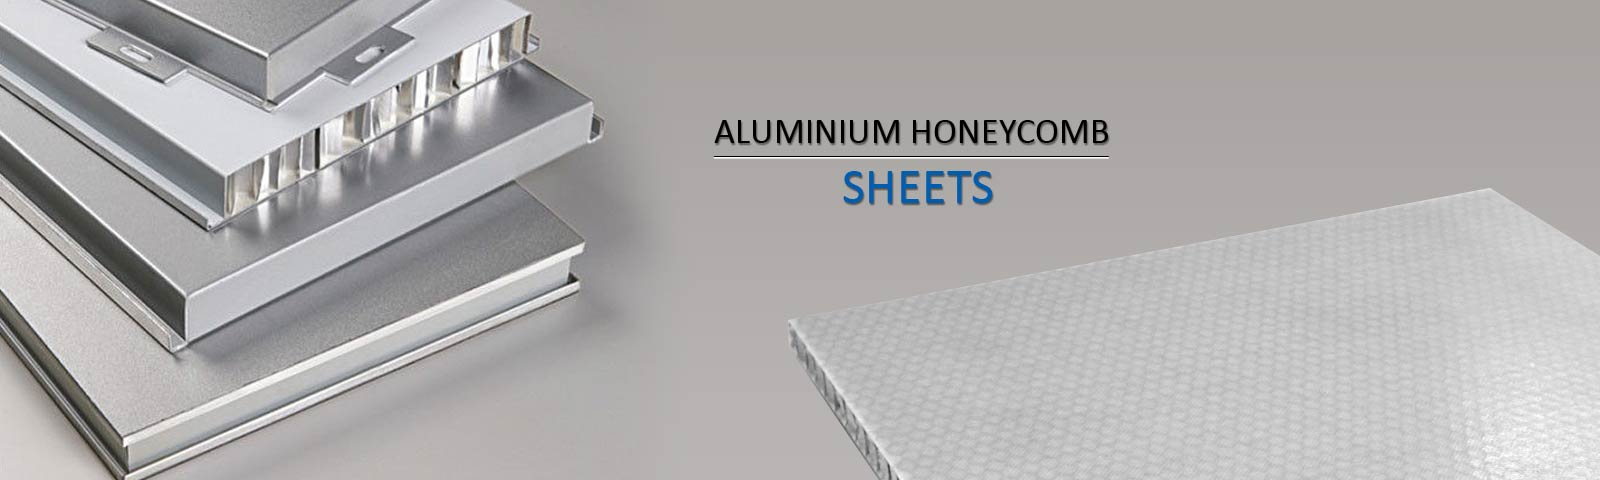 Aluminium Honeycom Sheets Manufacturer and Supplier in Pune